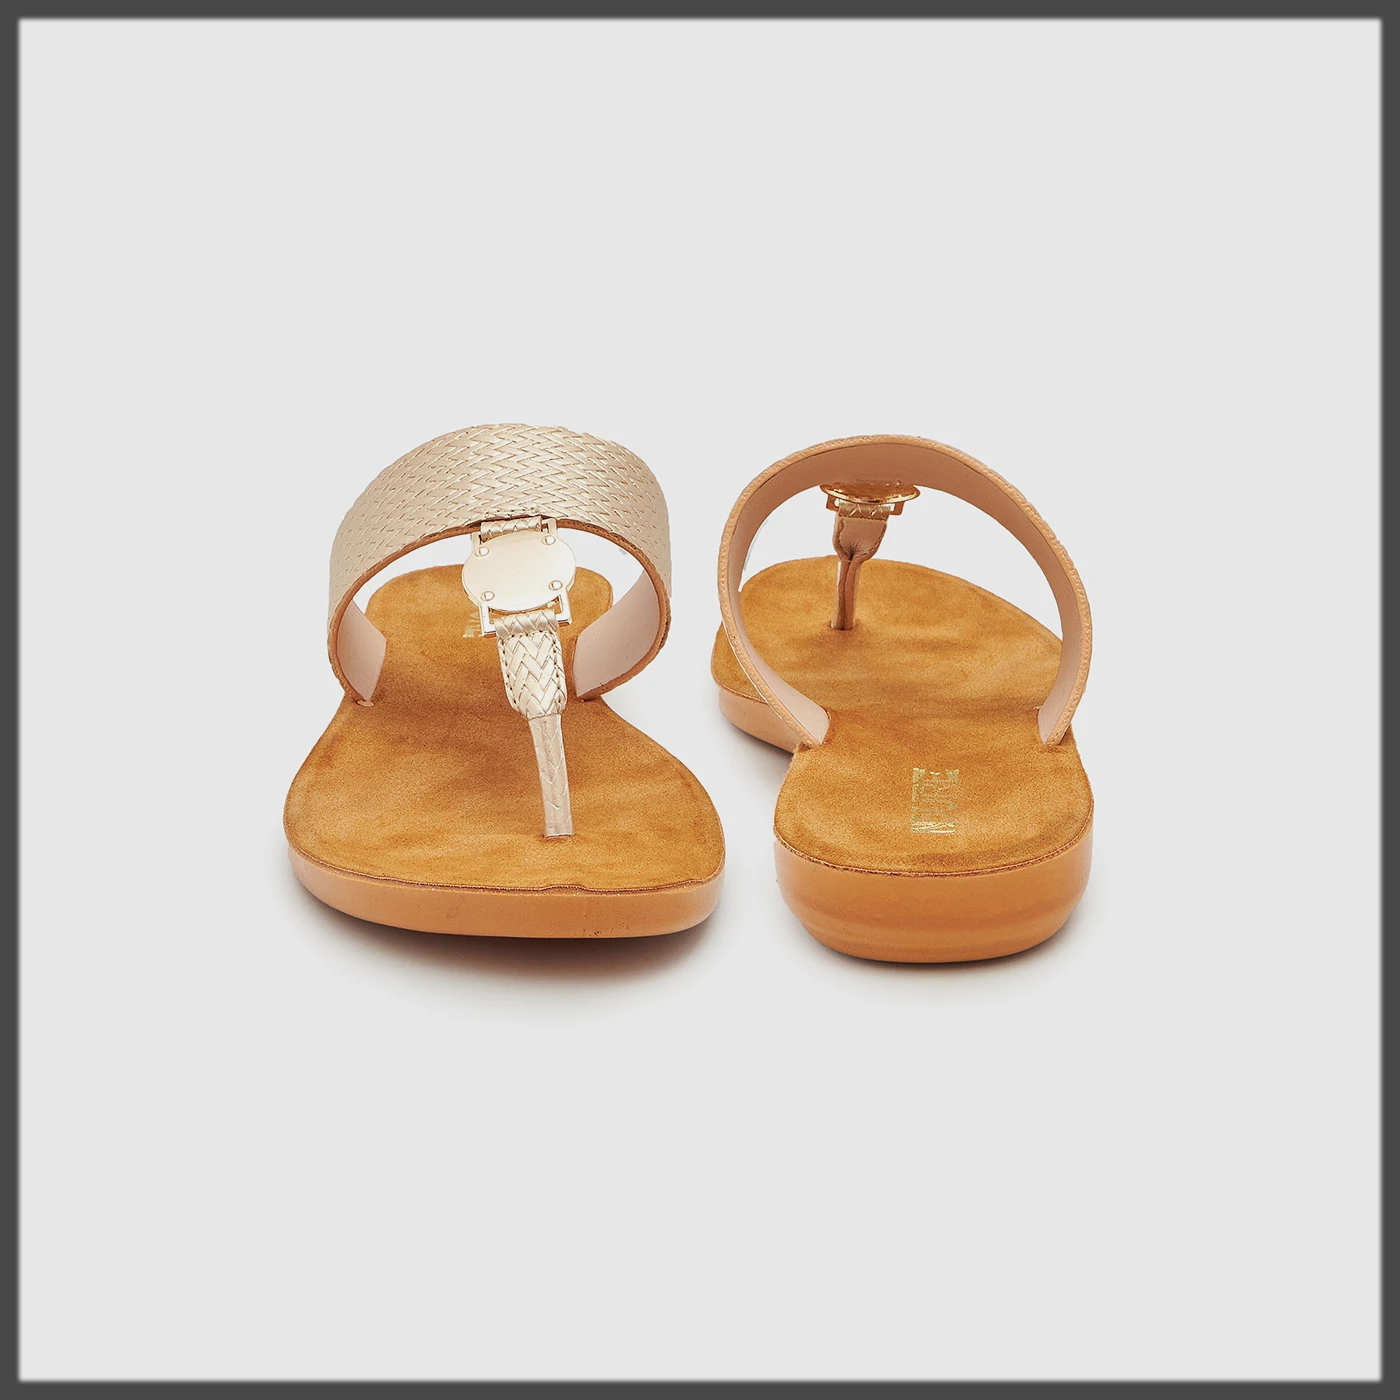 classy ndure shoes summer collection